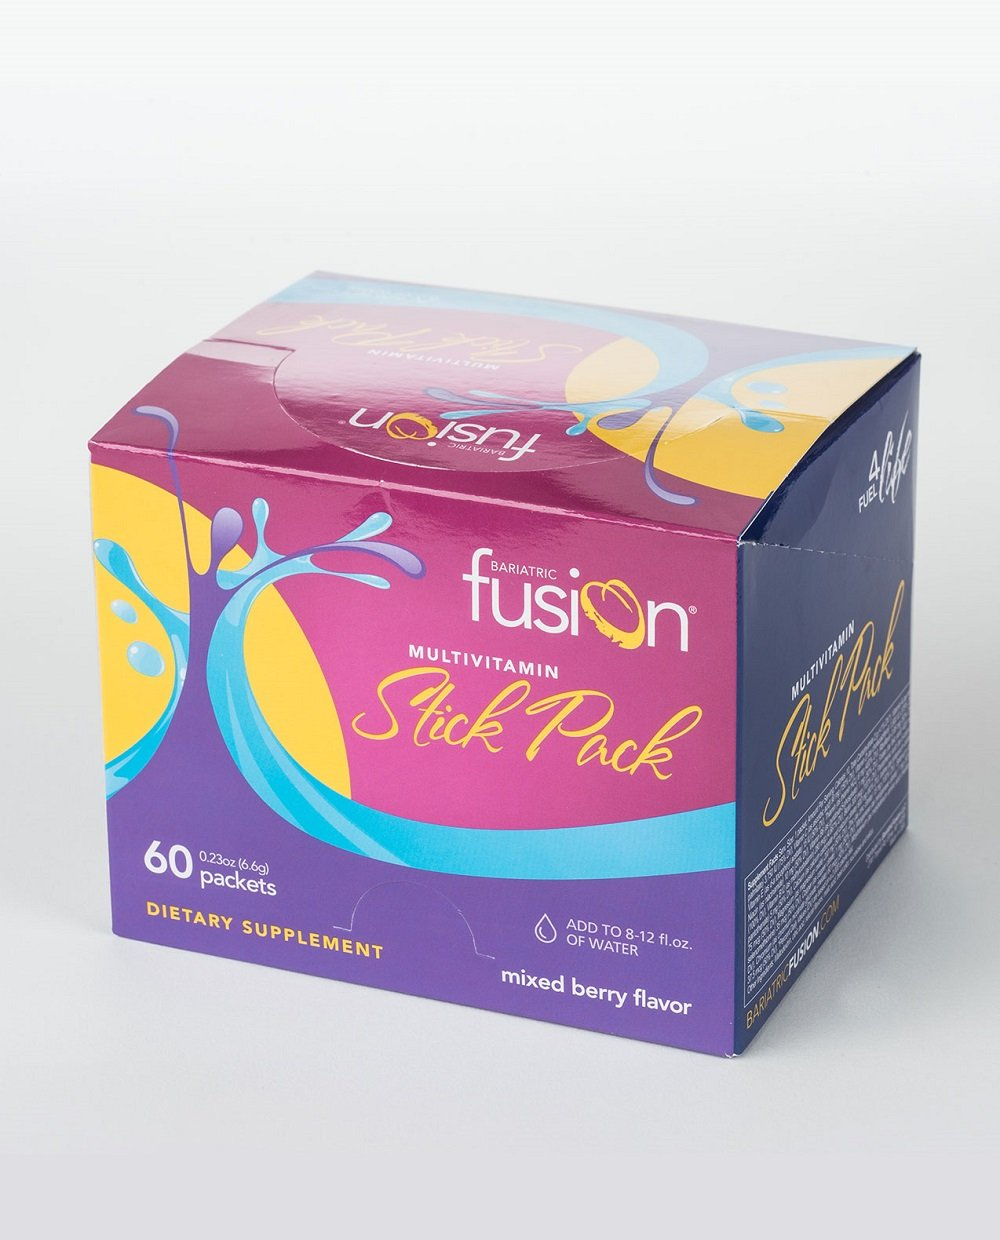 Bariatric Fusion Multivitamin & Mineral Stick Packs Mixed Berry for Gastric Bypass and Sleeve Gastrectomy